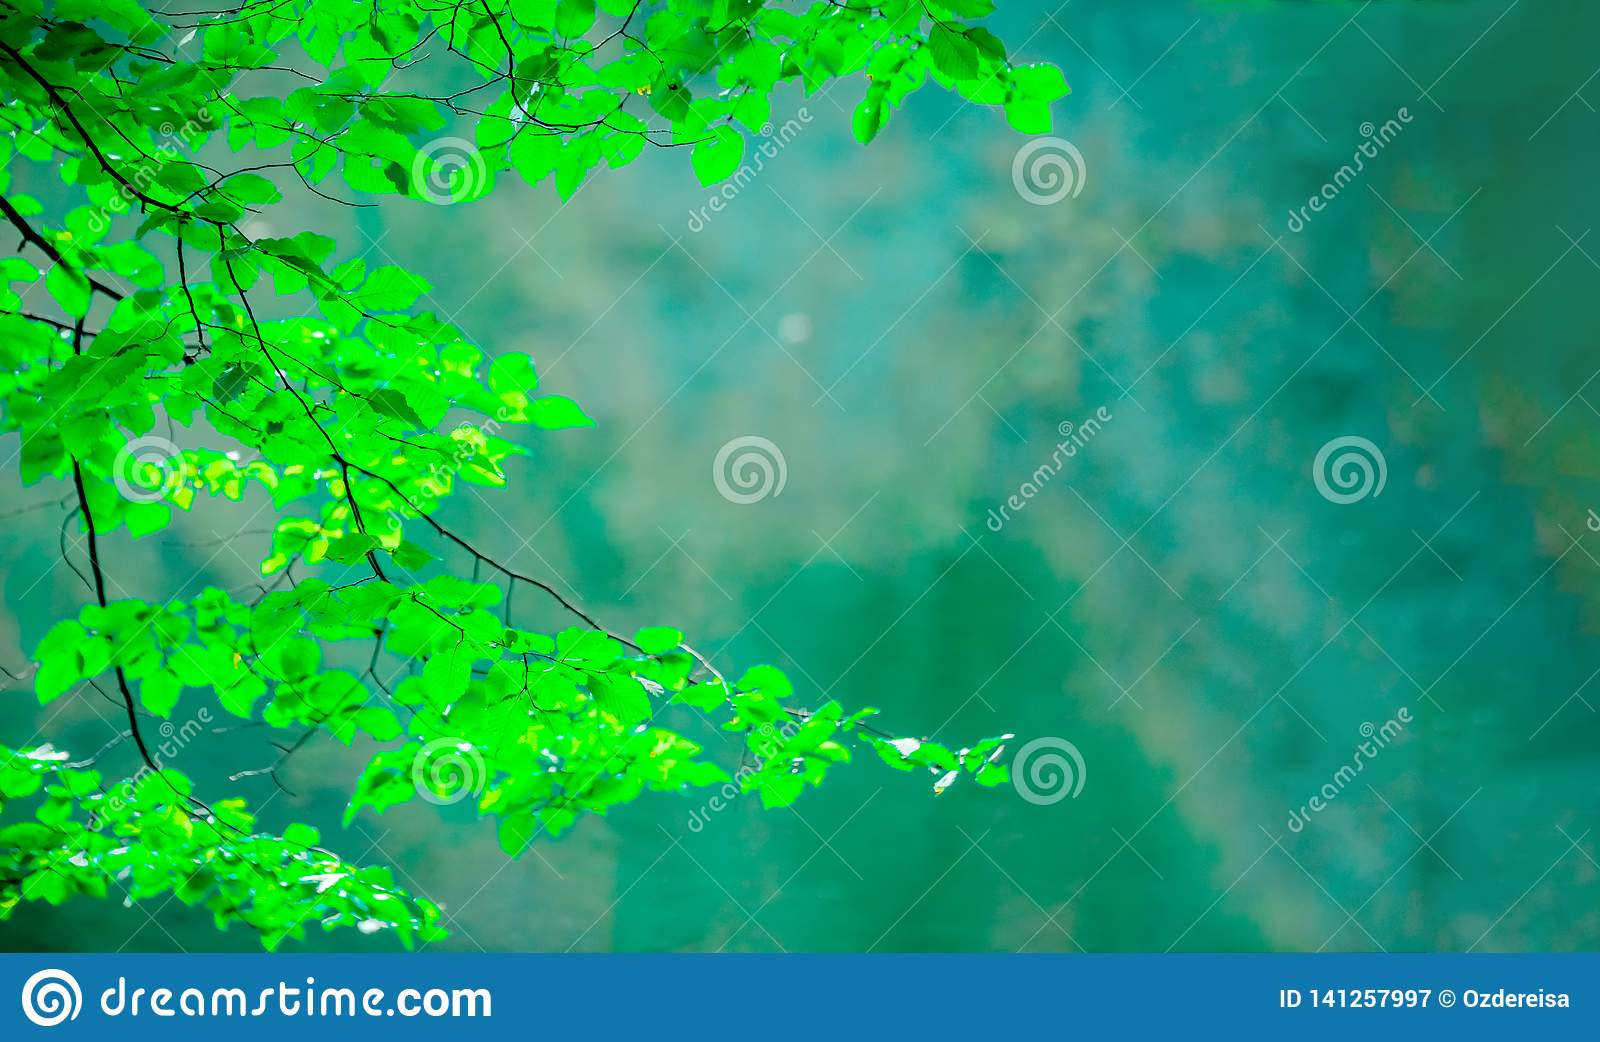 Nature View Of Green Leaf On Blurred Greenery Background